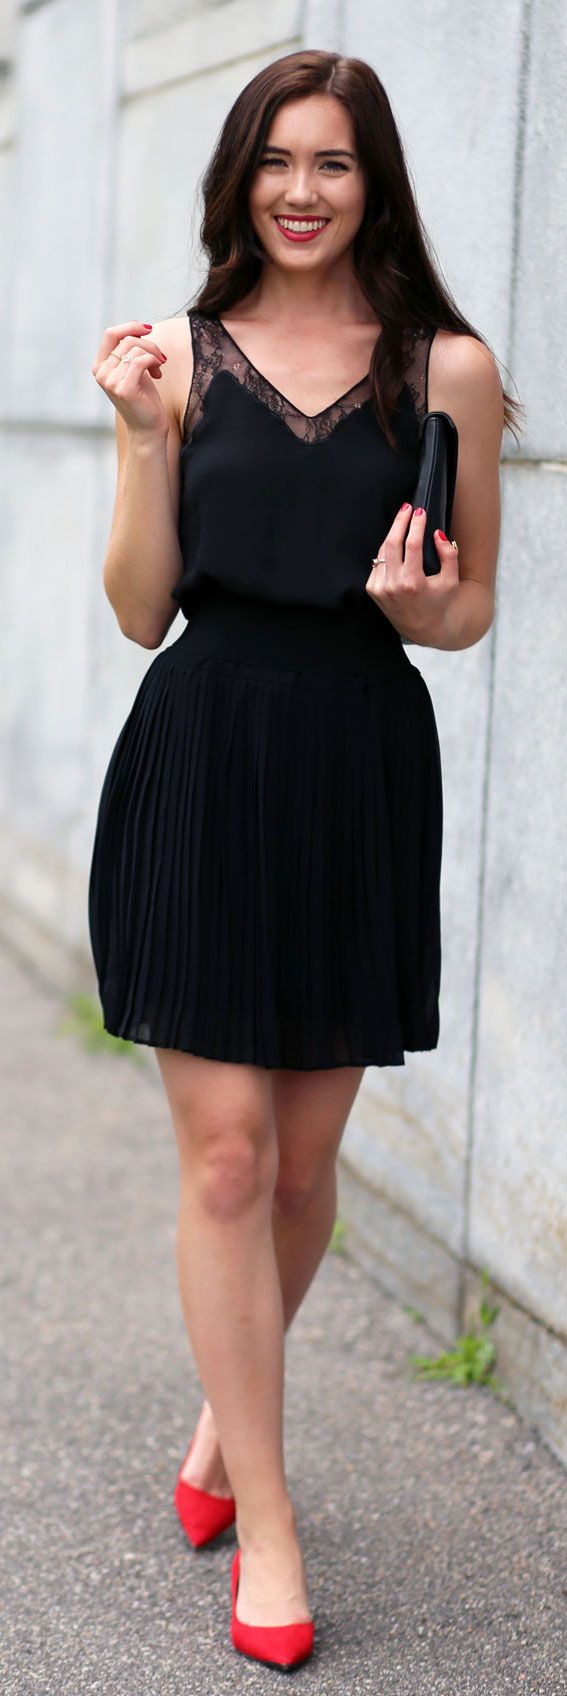 How to style an ALL BLACK outfit in SUMMER - pop of red pumps!! Top is 30% off, and this pleated skirt is a must all year long! By fashion blogger Marie's Bazaar